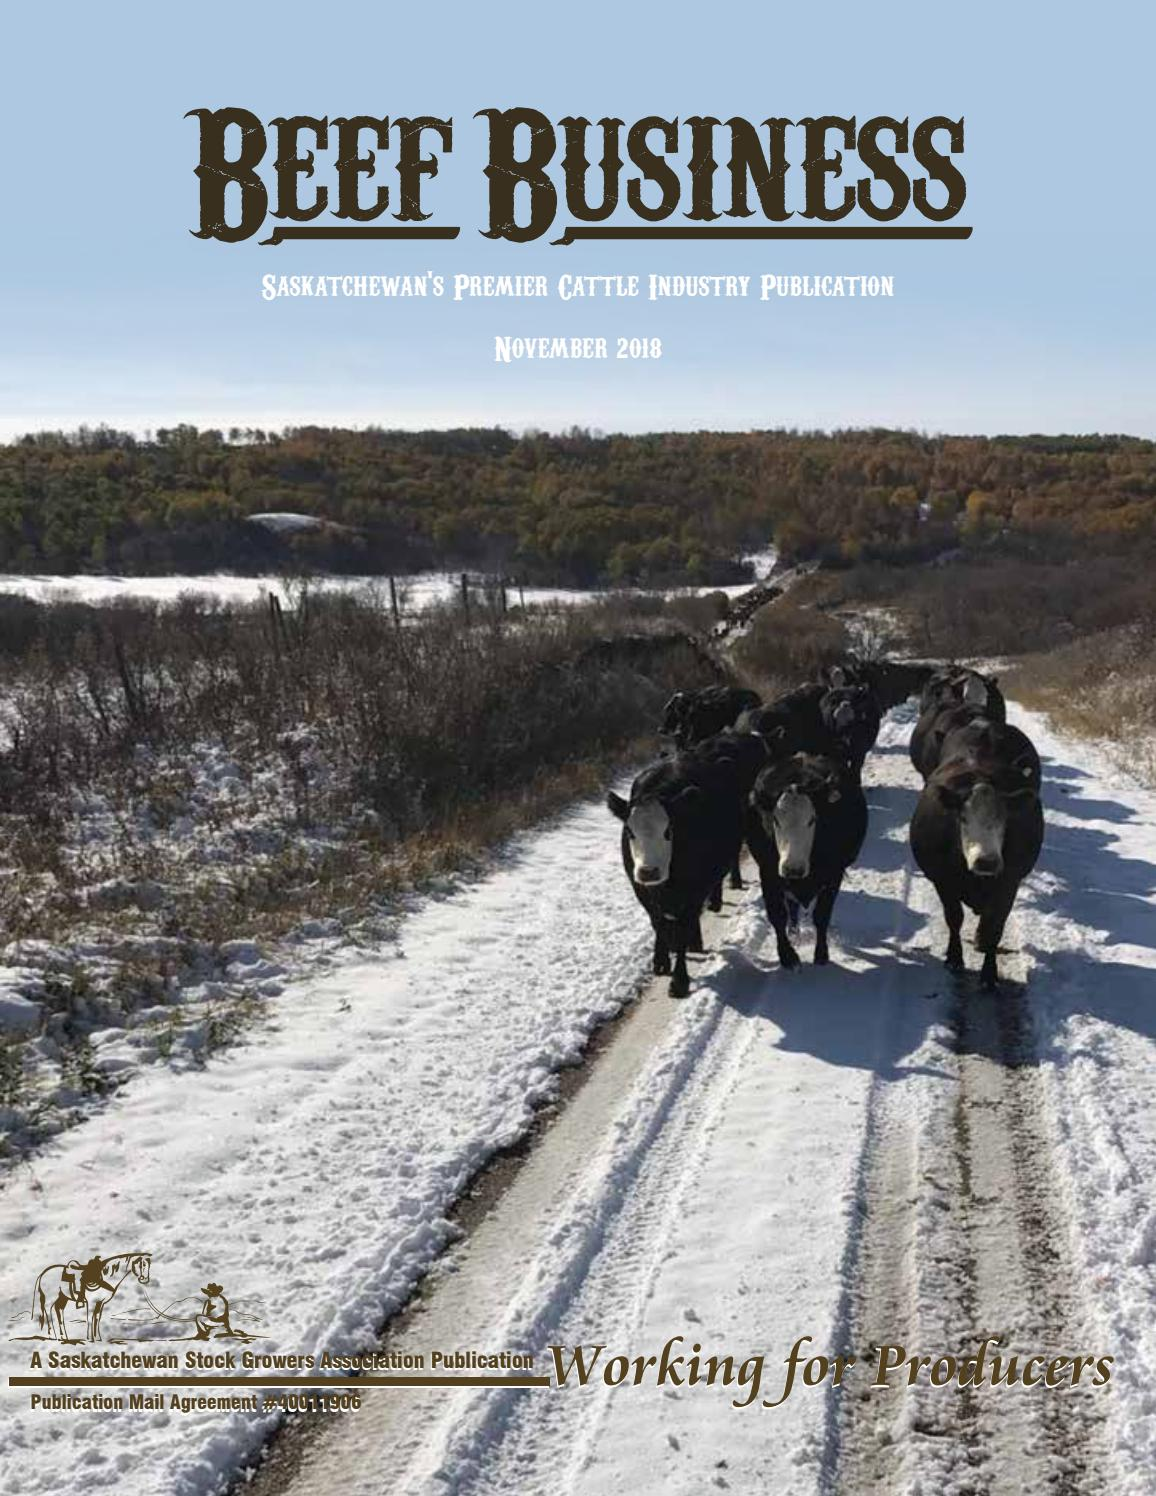 Beef Business November 2018 by Saskatchewan Stock Growers